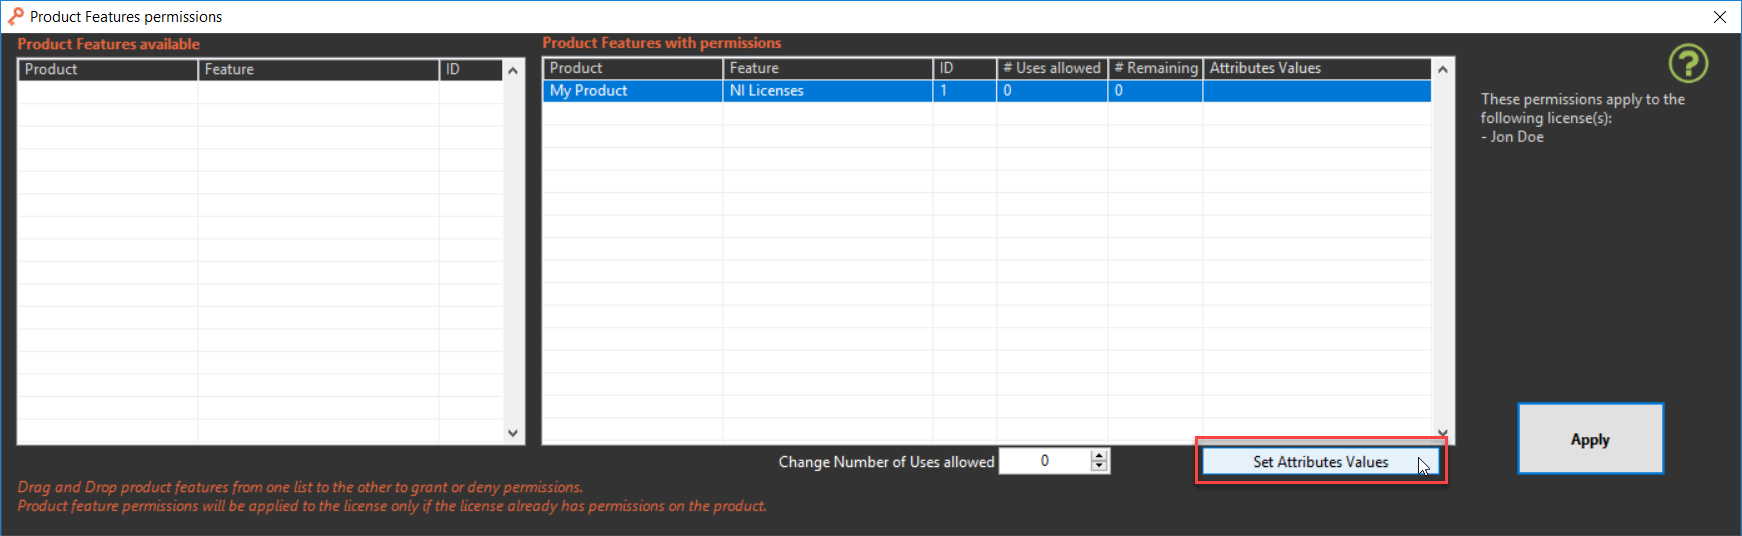 Set Product Feature Attributes Values